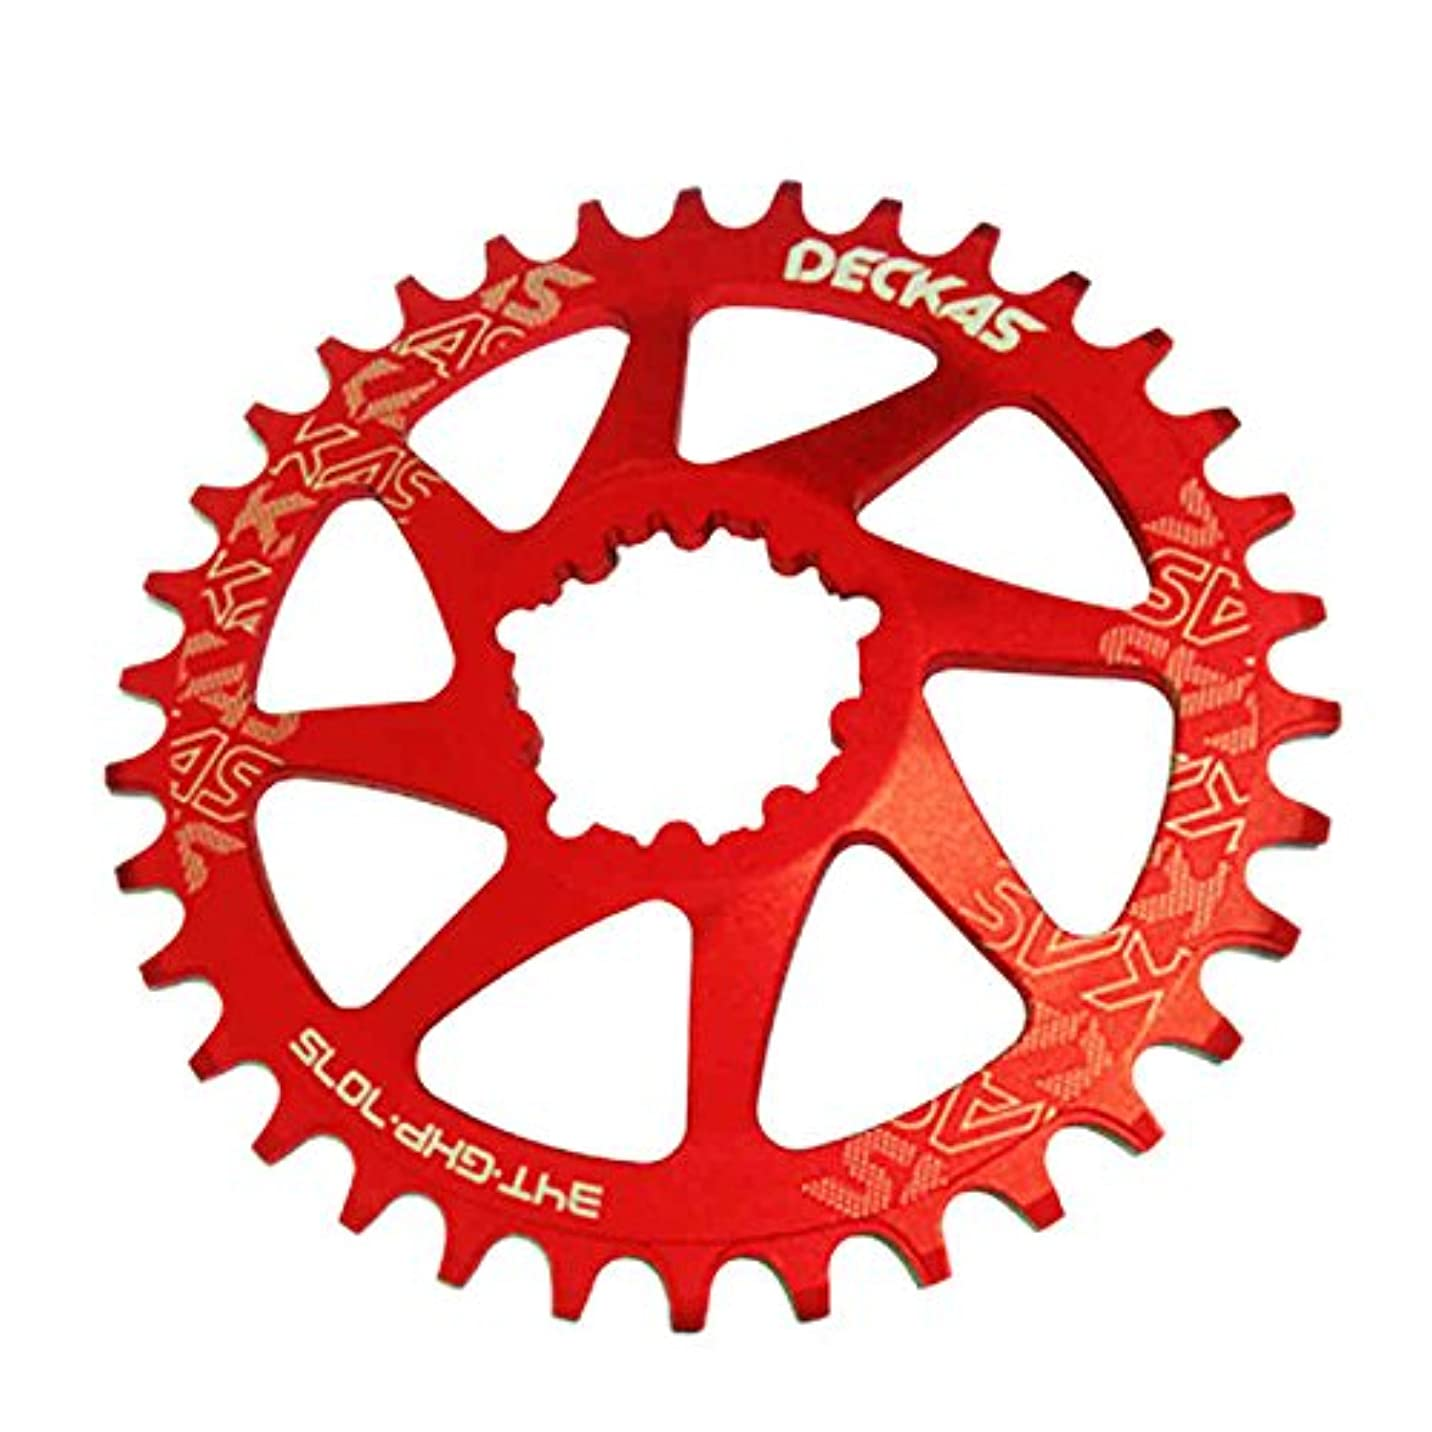 滅多未就学肥満Propenary - GXP bicycle crankset Al 7075 CNC32T 34T Narrow Wide Chainring Chainwheel for Sram XX1 XO1 X1 GX XO X9 crankset bicycle parts [ 32T Red ]